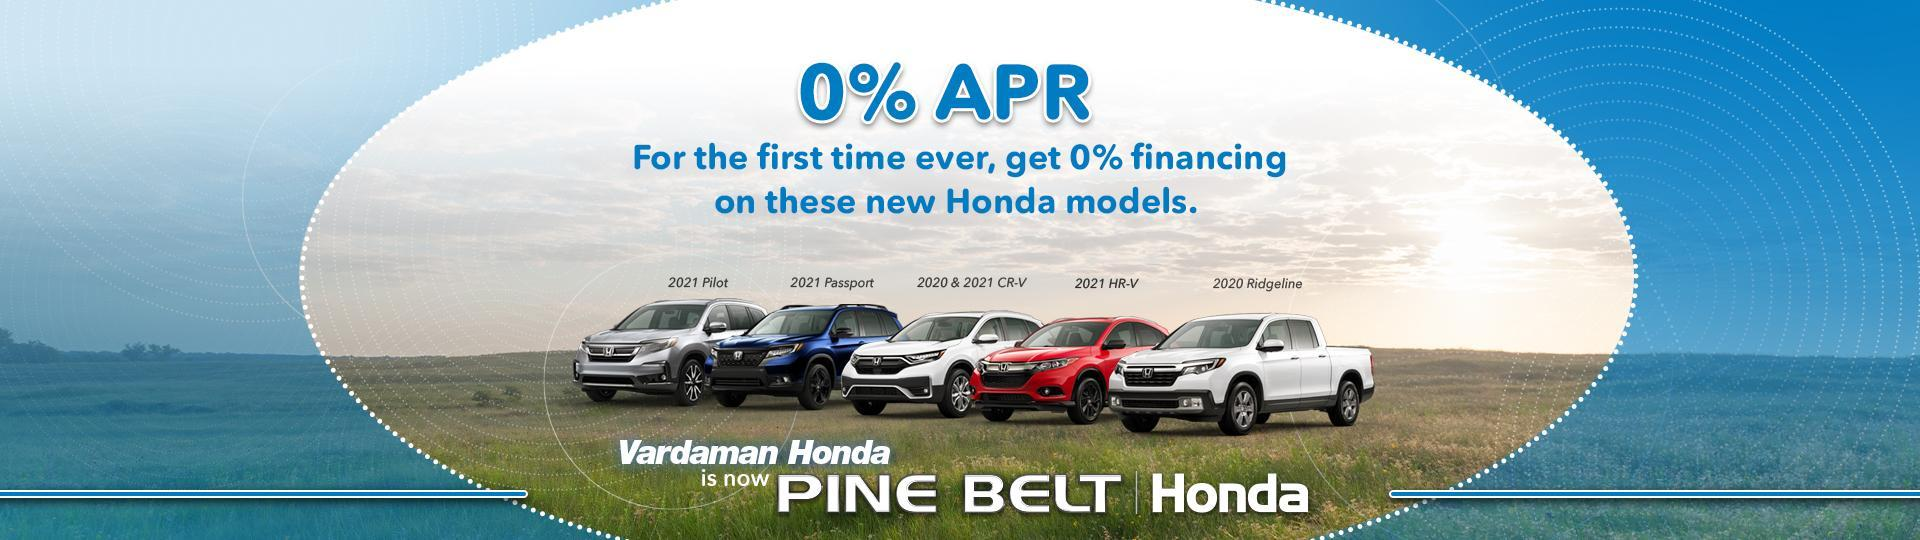 0% APR Finance Offer - Pine Belt Honda